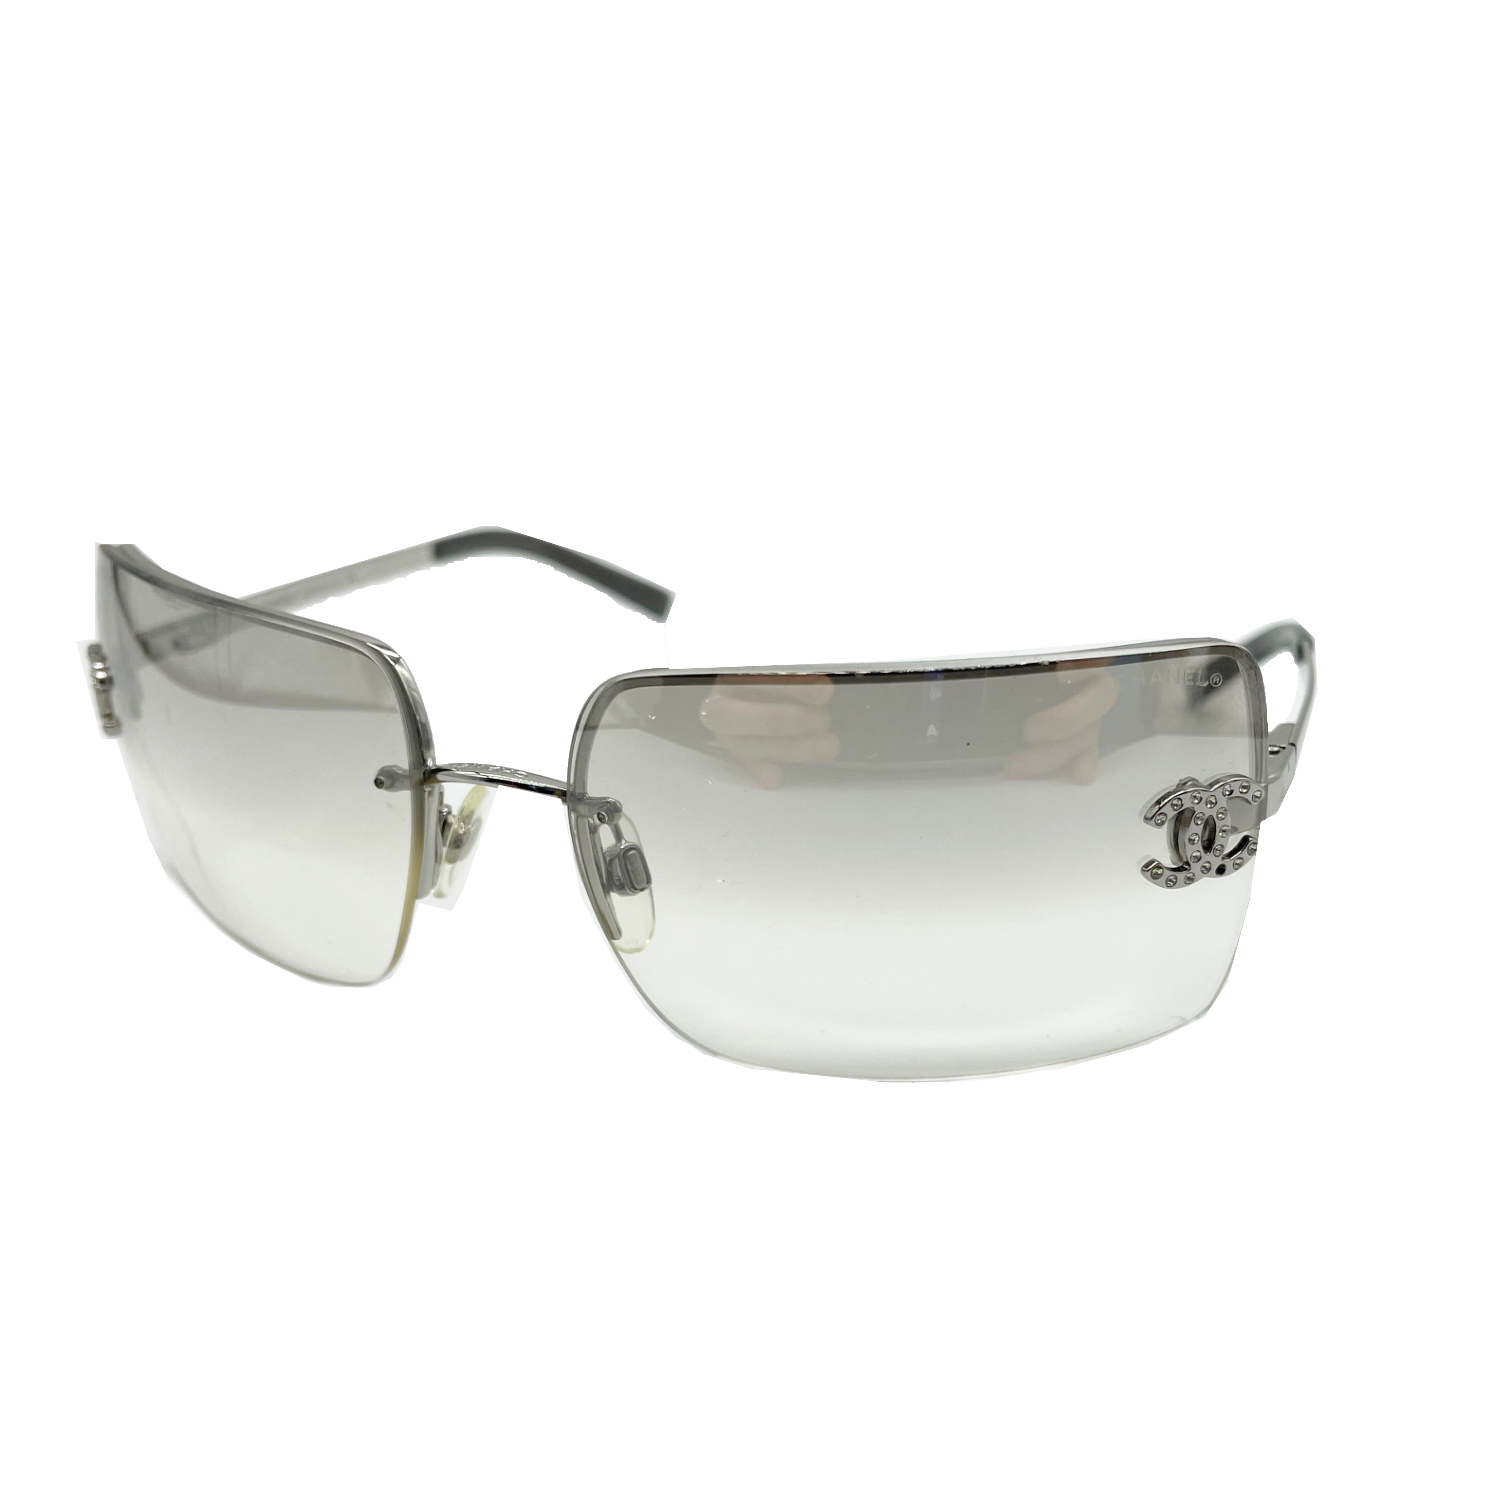 Vintage Chanel Diamante Rimless Sunglasses in Silver | NITRYL